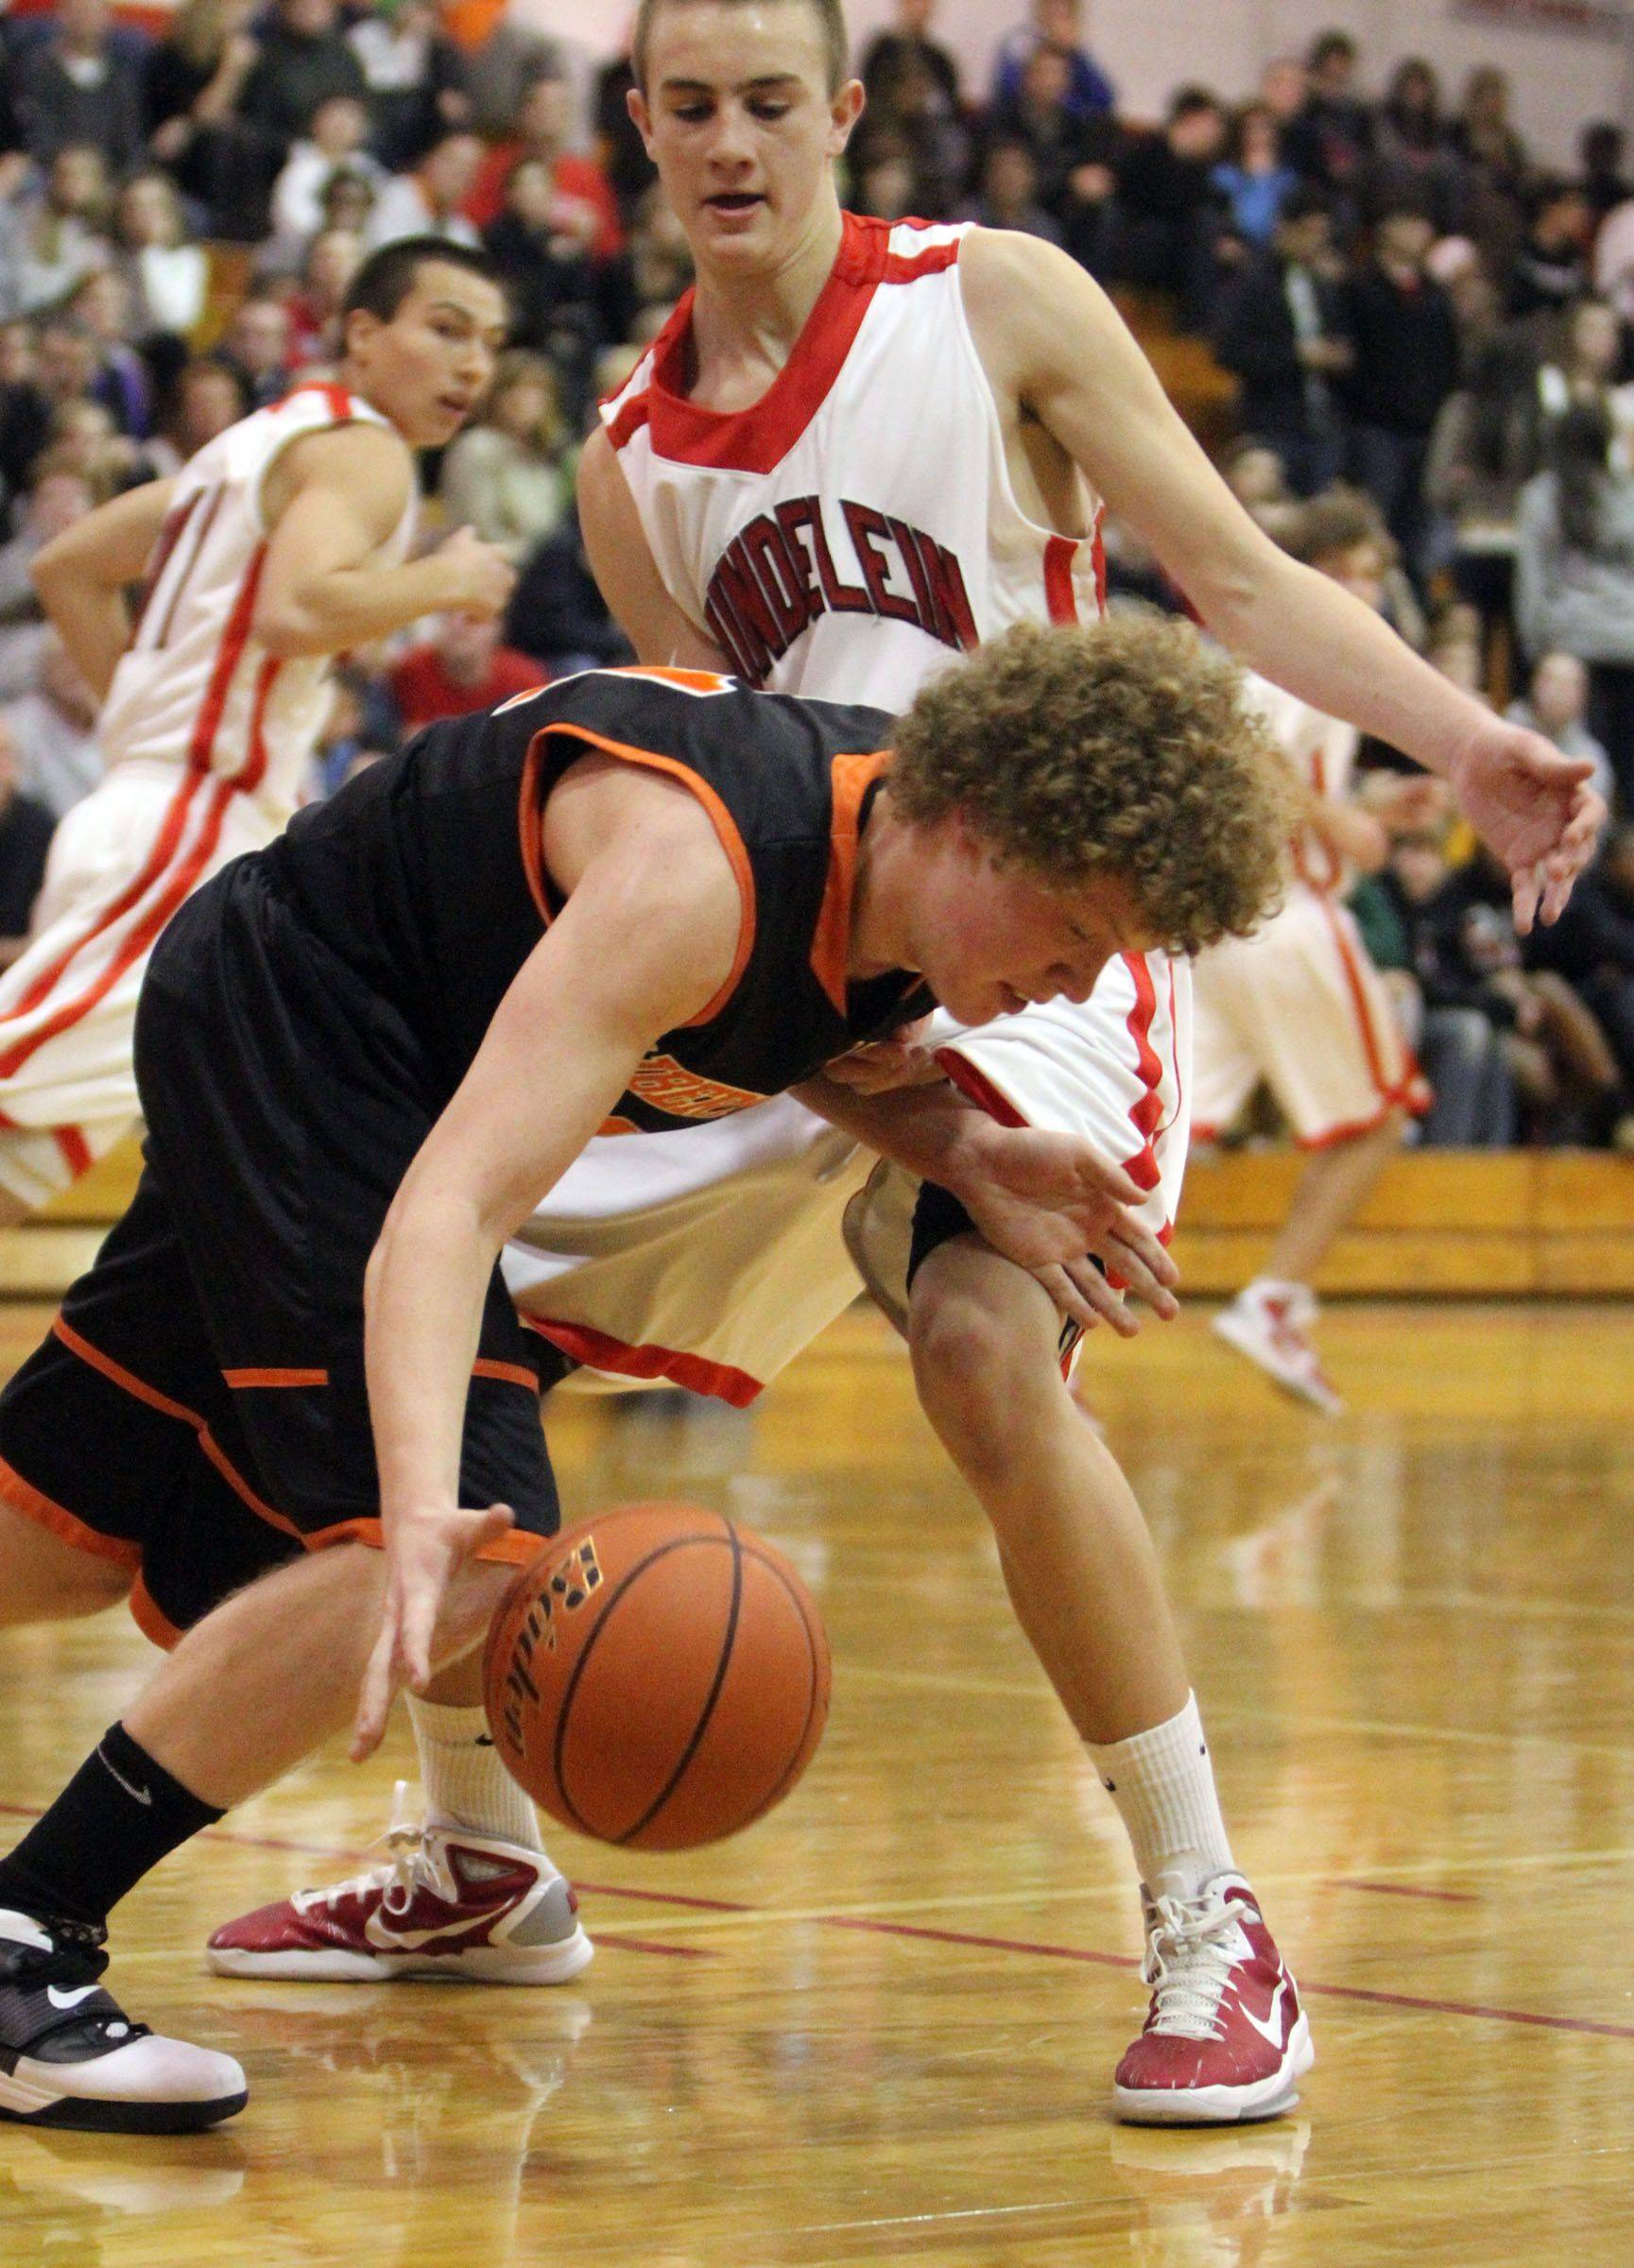 Images from the Libertyville at Mundelein boys basketball game Friday, January 7.